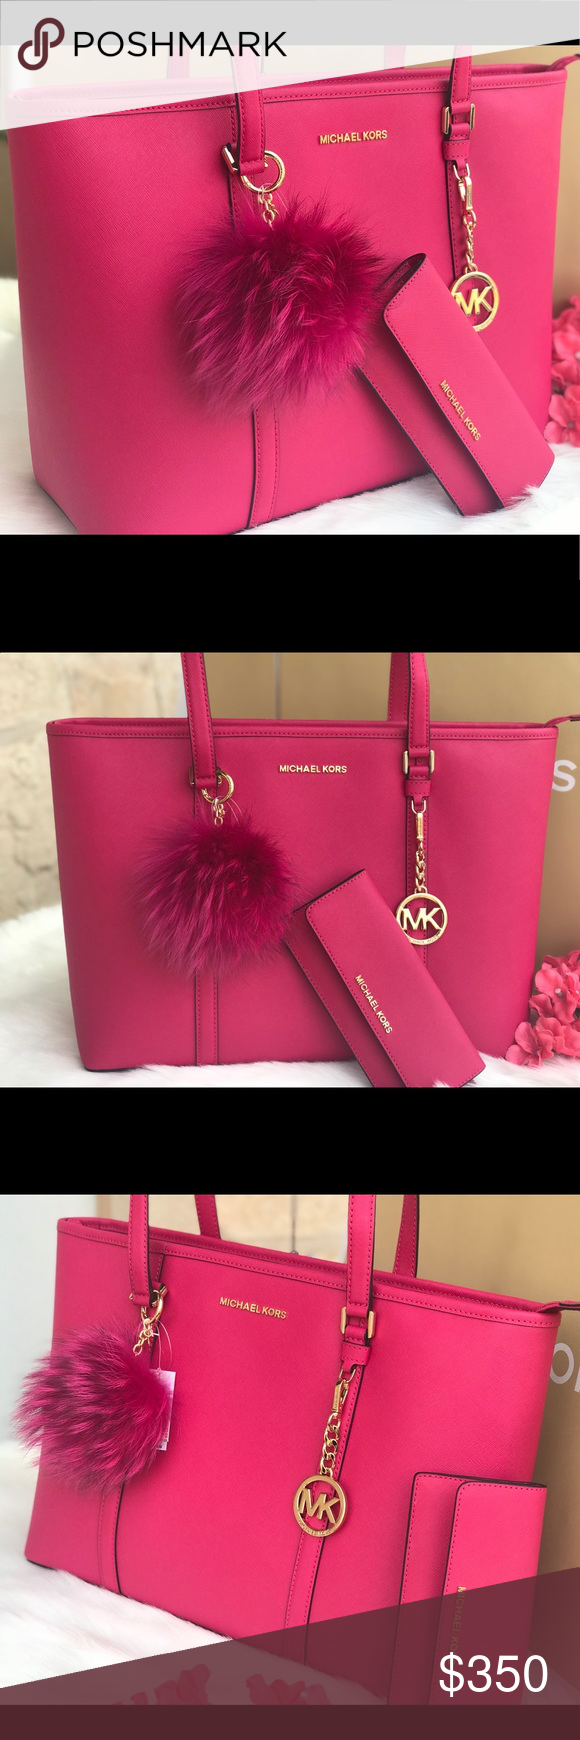 ec44a36b01e8 🌷MICHAEL KORS Ultra Pink Large Leather Tote Set MICHAEL KORS Large Leather  Ultra Pink Sady Tote Set 🌷Pom Pom is not included